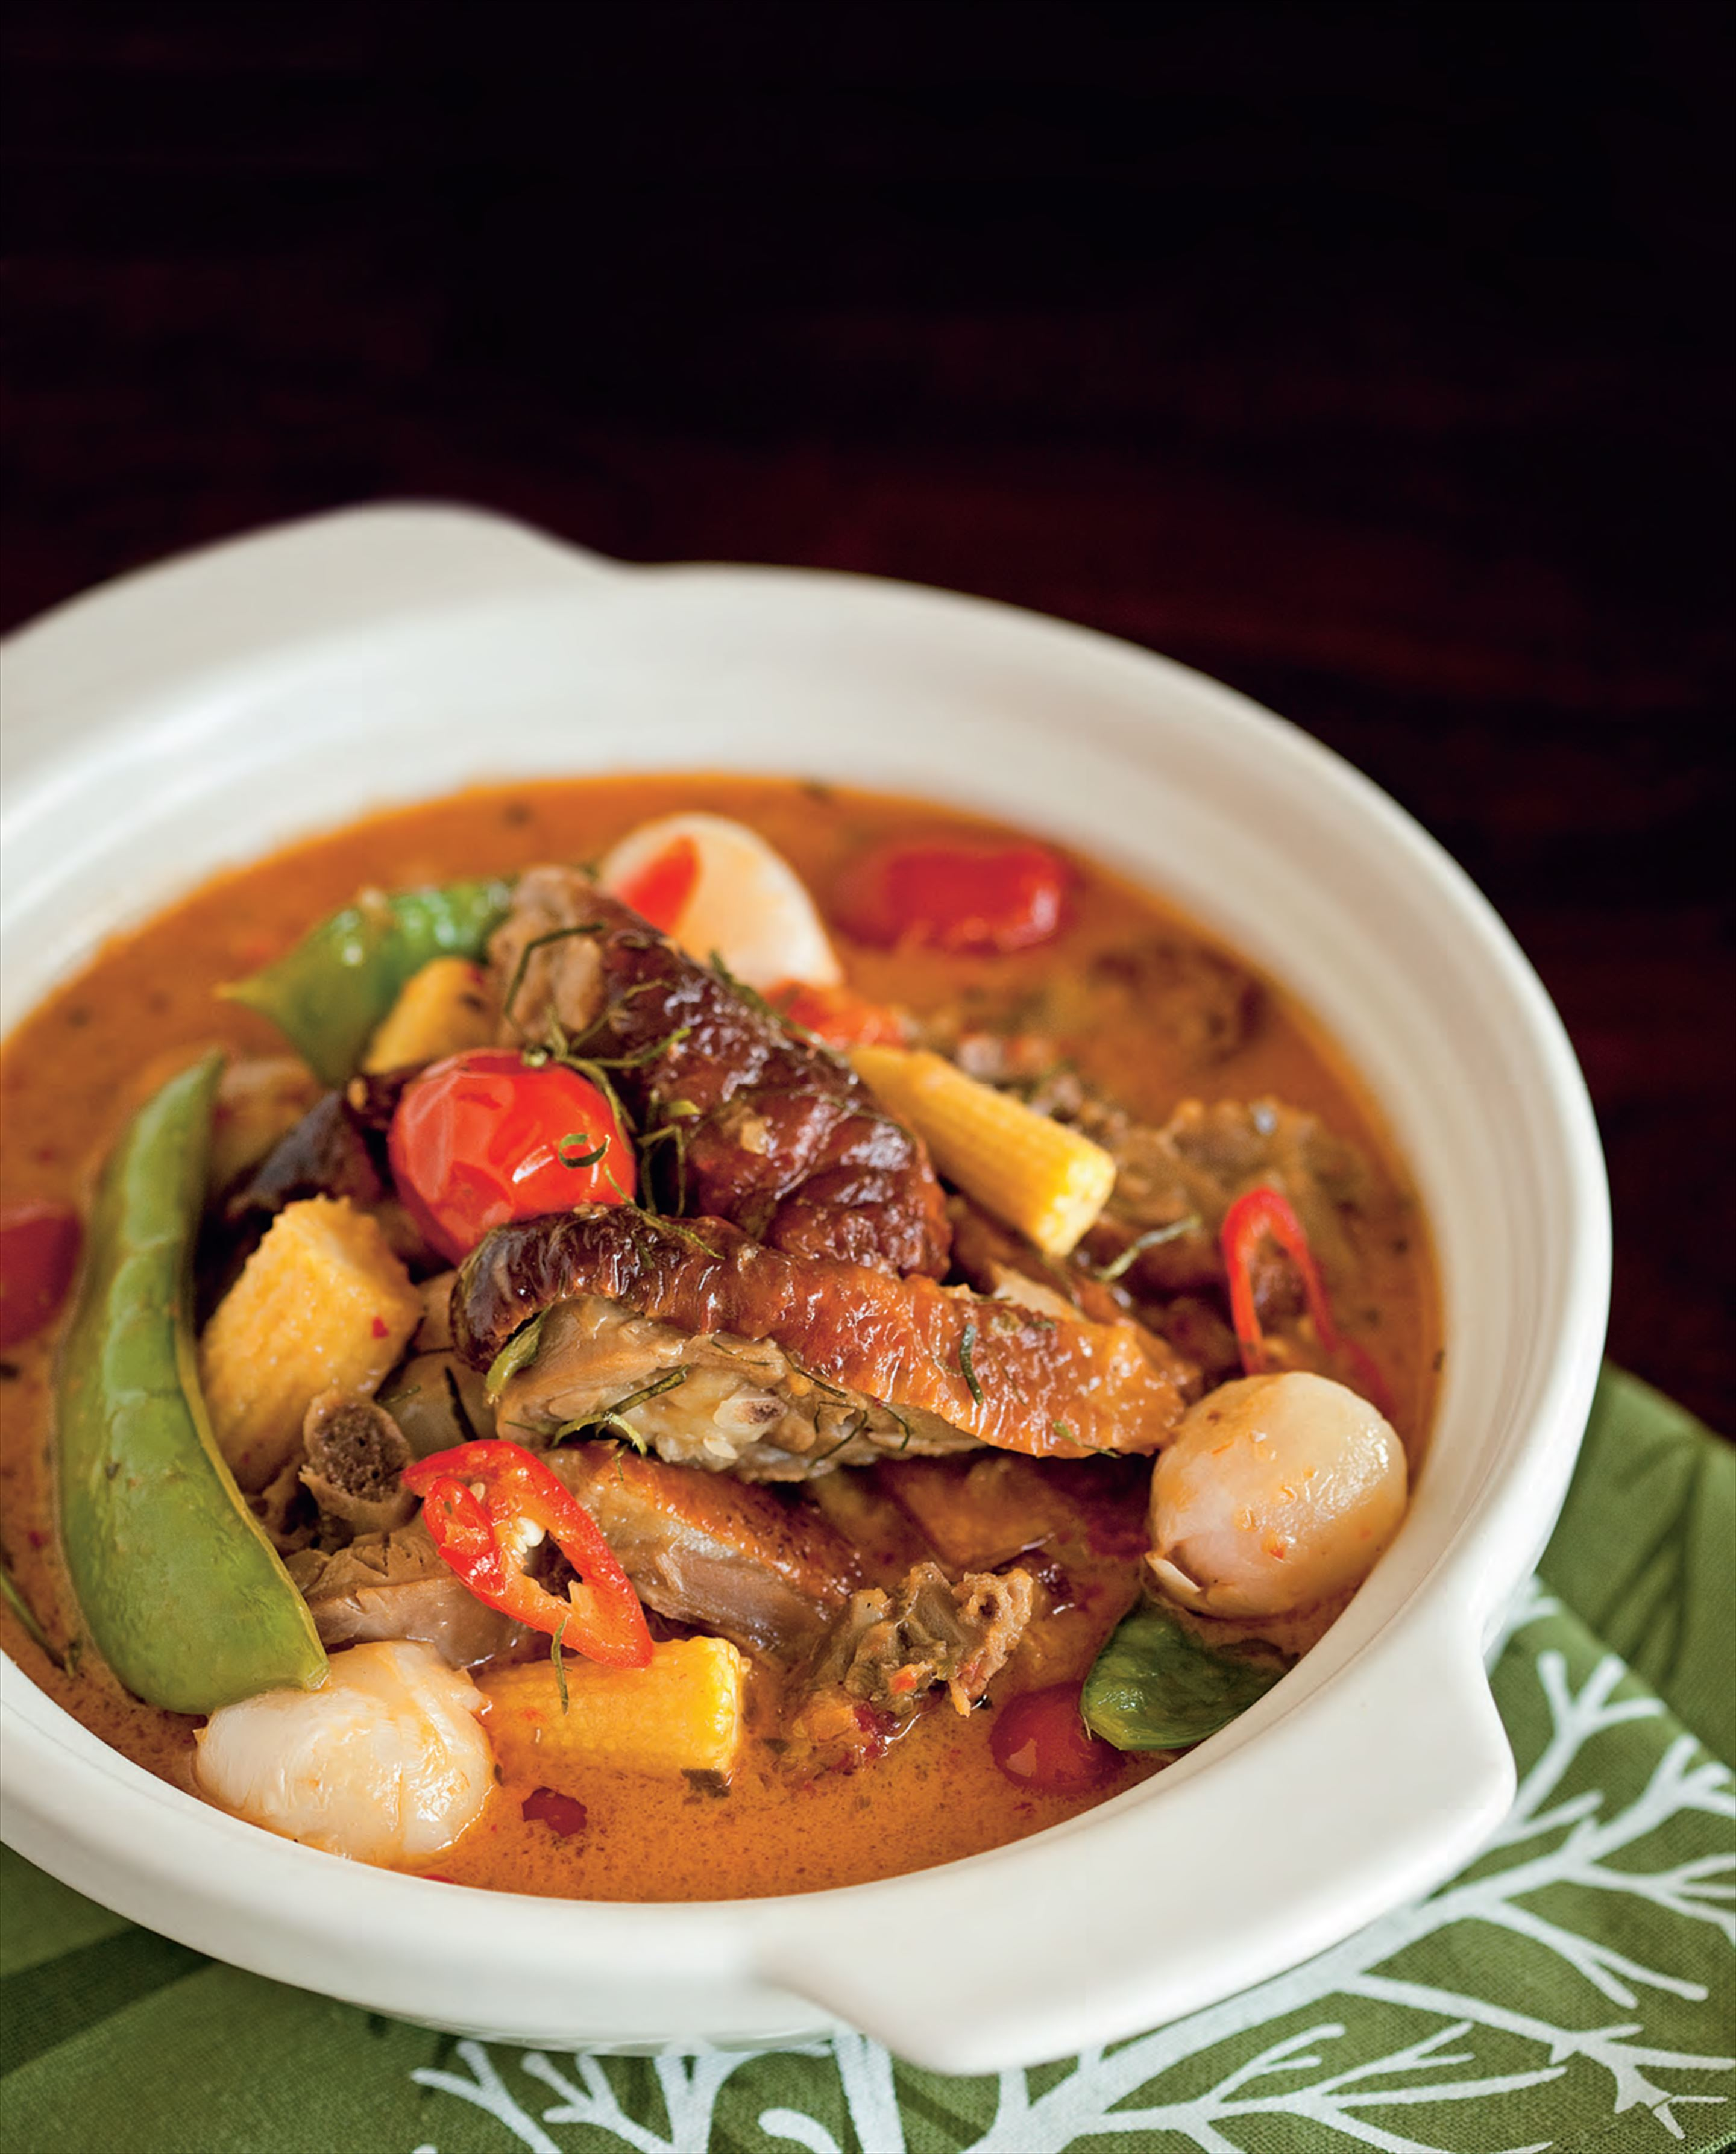 Roast duck and lychee red curry